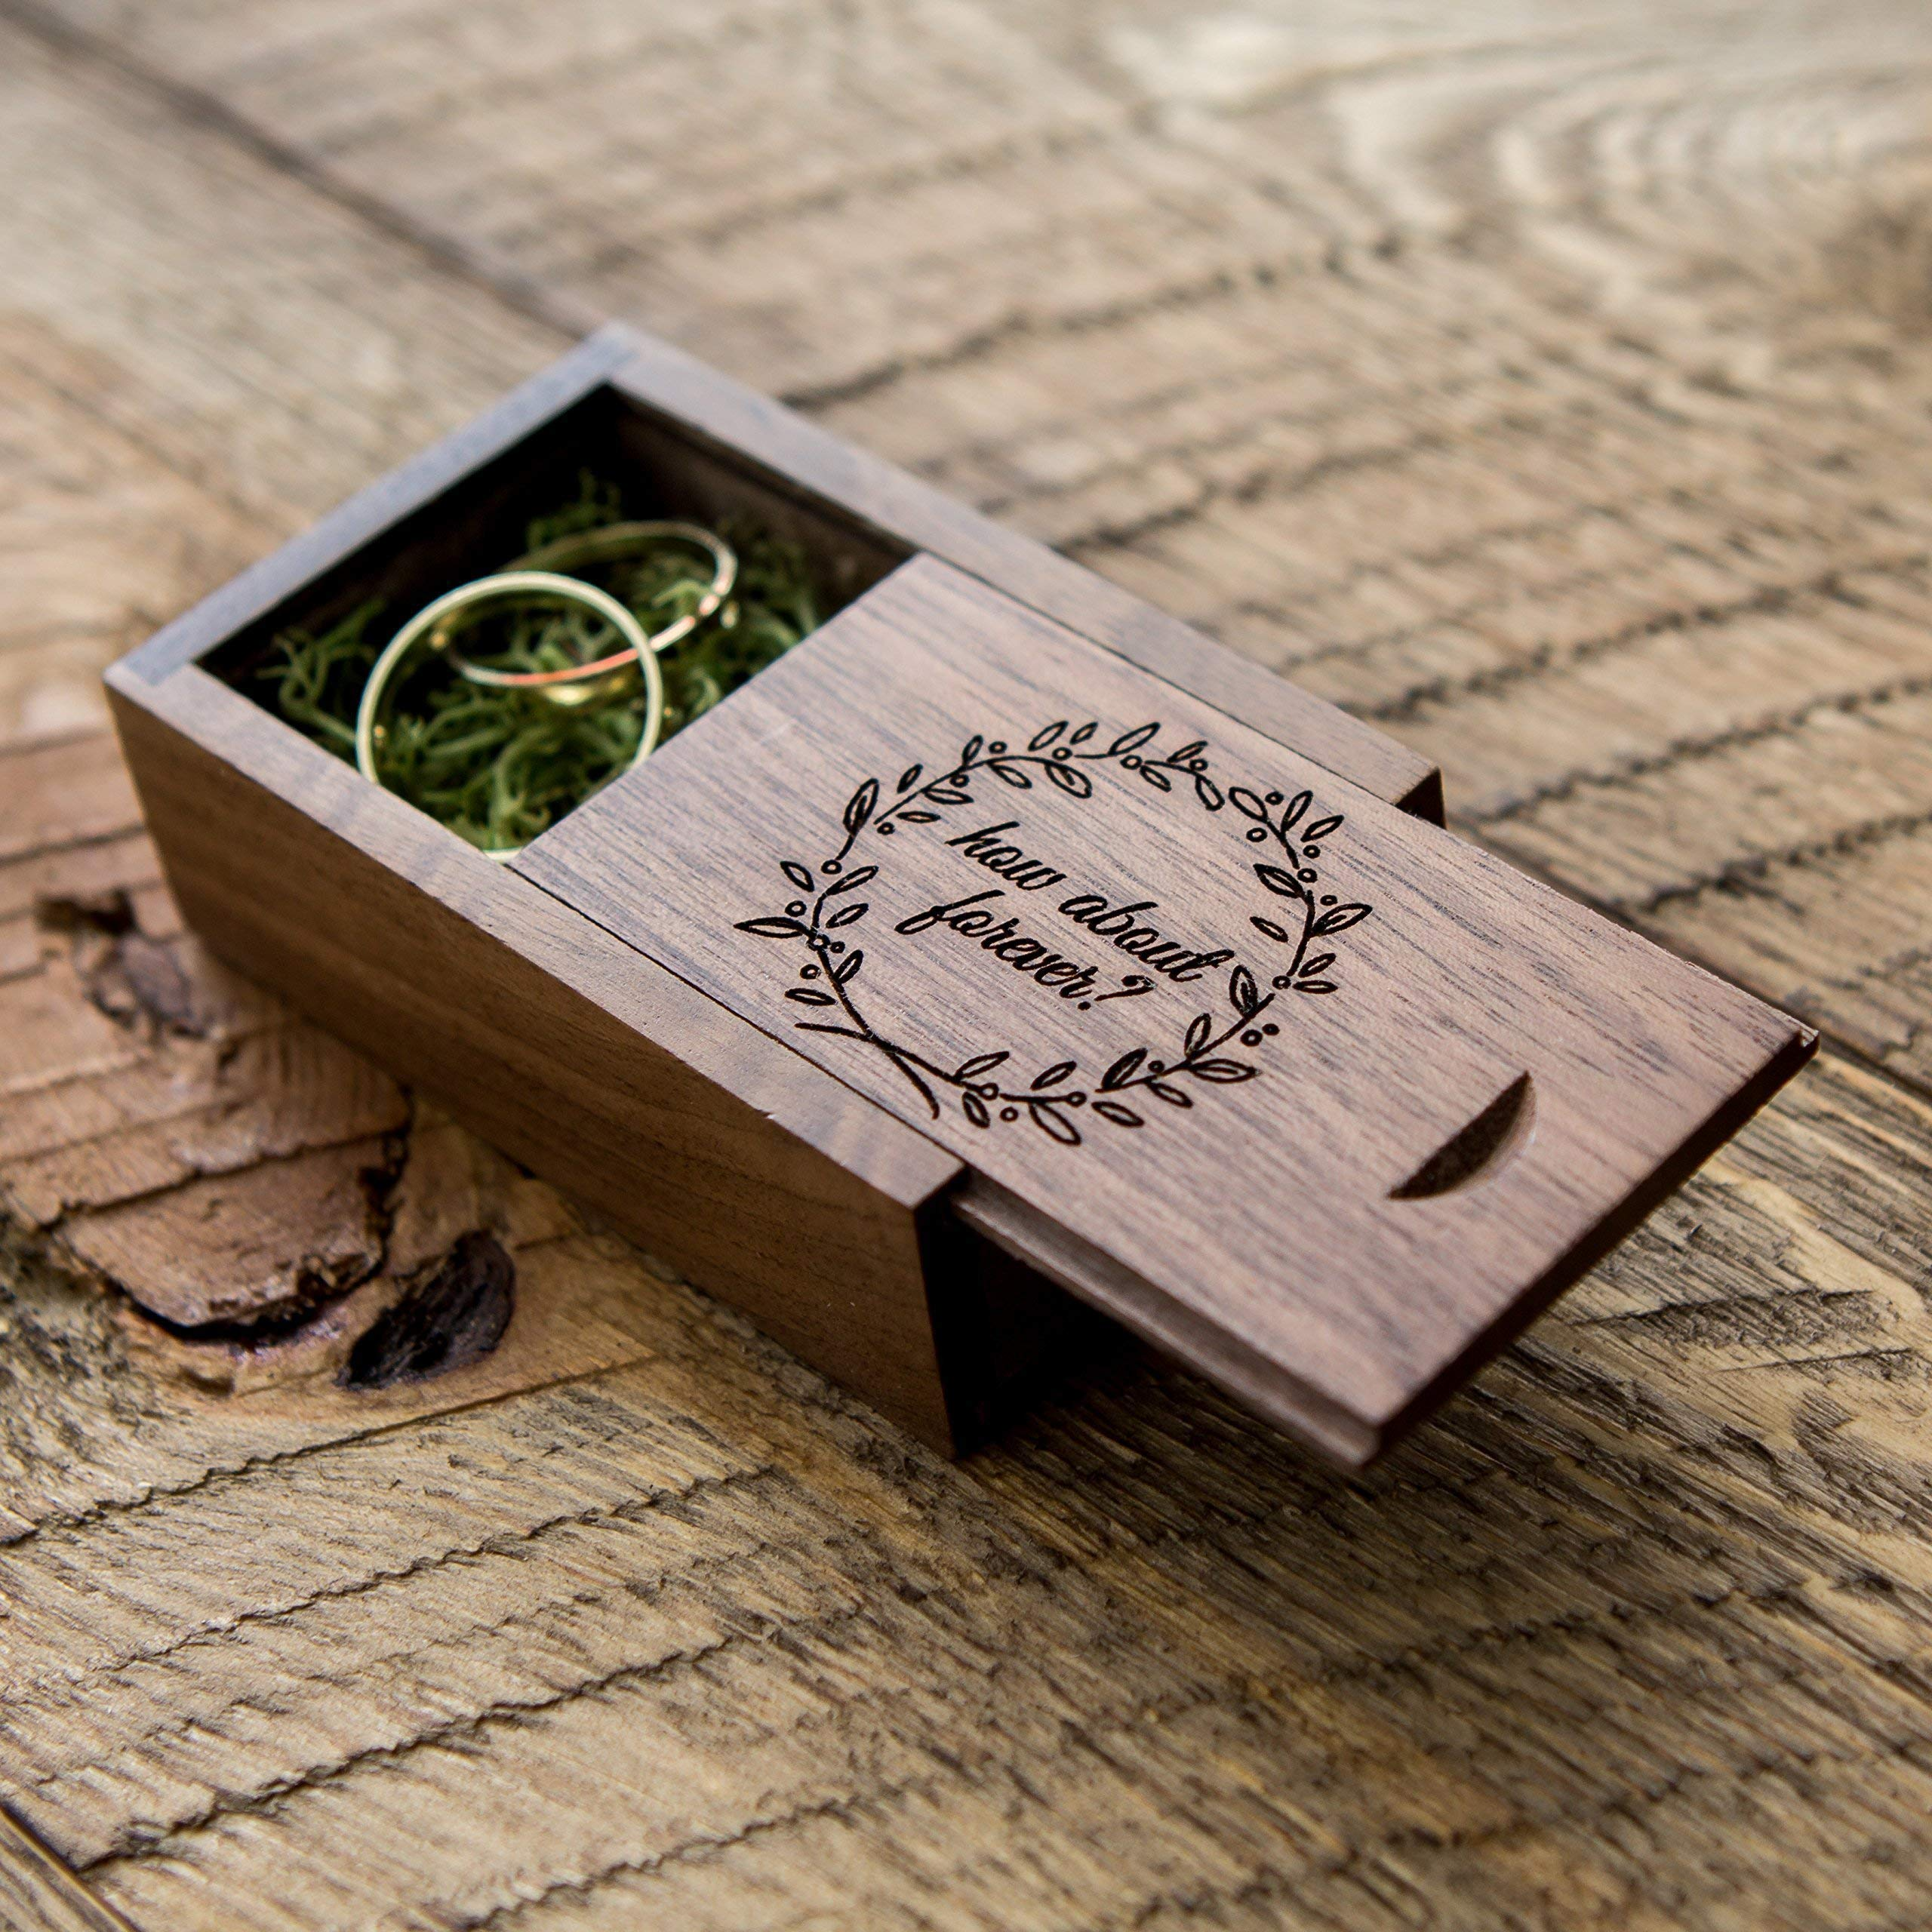 Engraved Walnut Wood Box with''how about forever?'' engraved and moss box filling (Wedding Ring Box, Small USB Box, Engagement Ring Box, Tiny Gift Box, Ring Bearer Box, Photo Prop, Proposal Box)